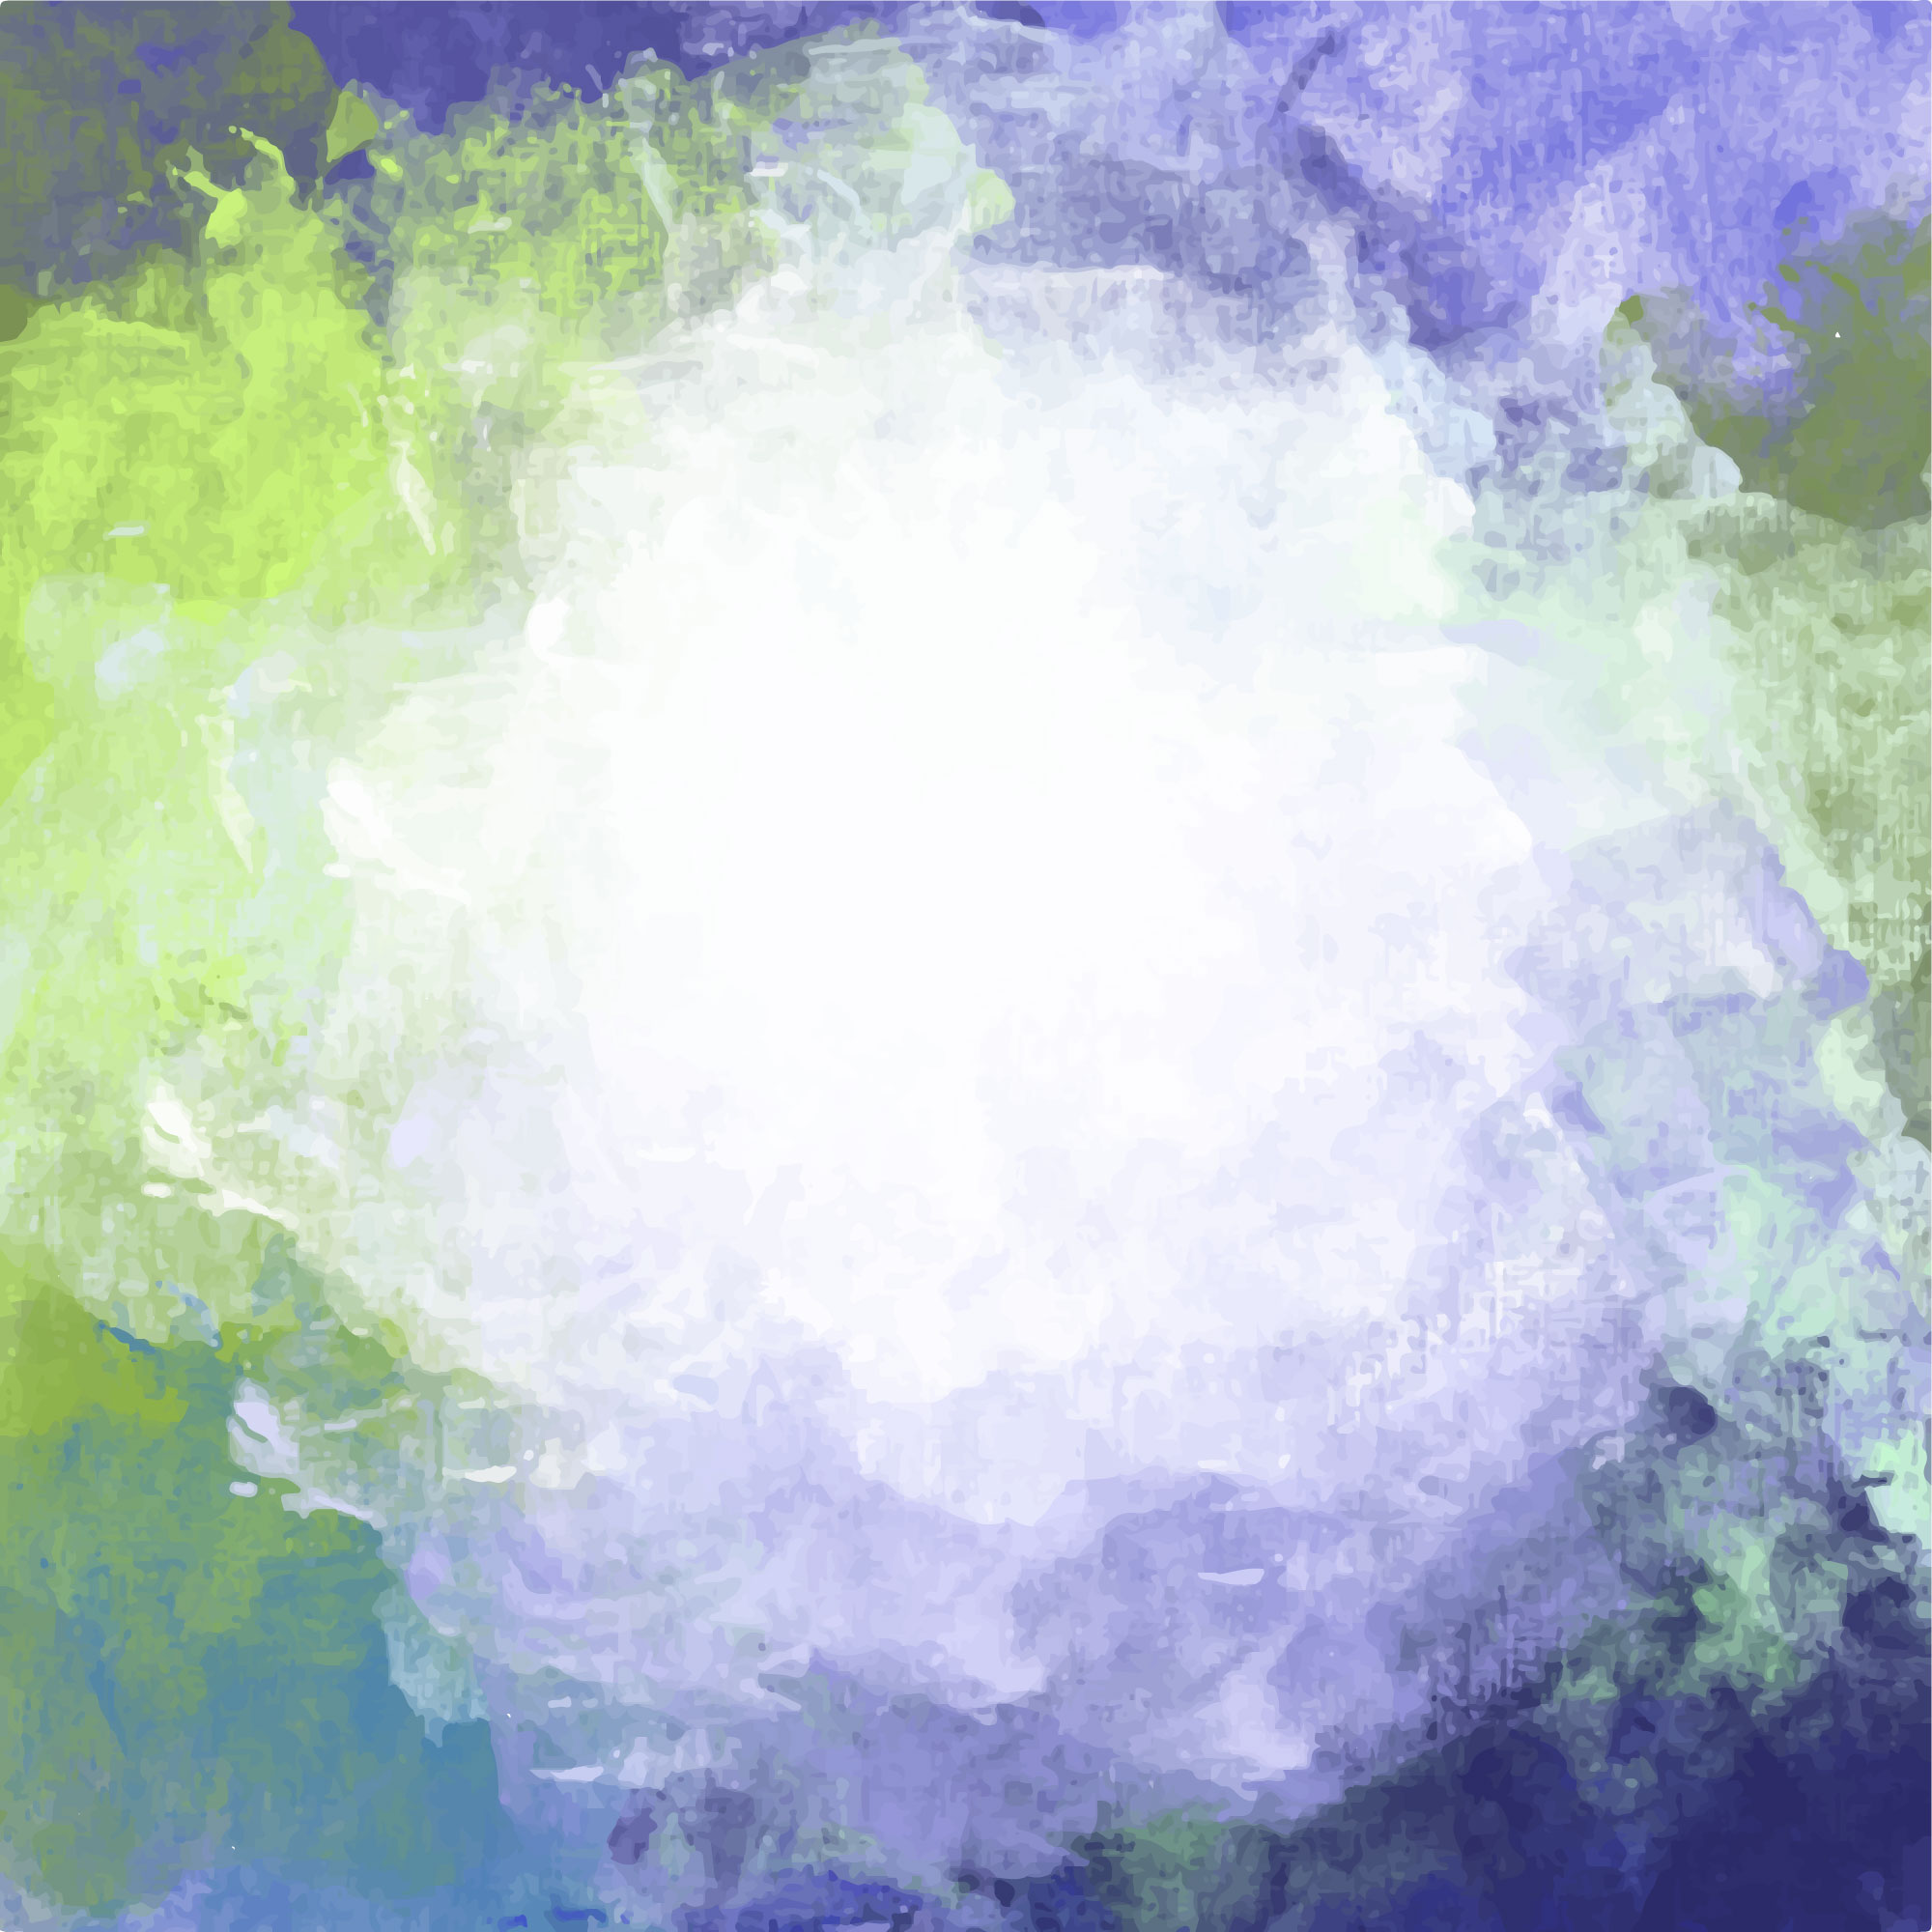 Colourful watercolor background